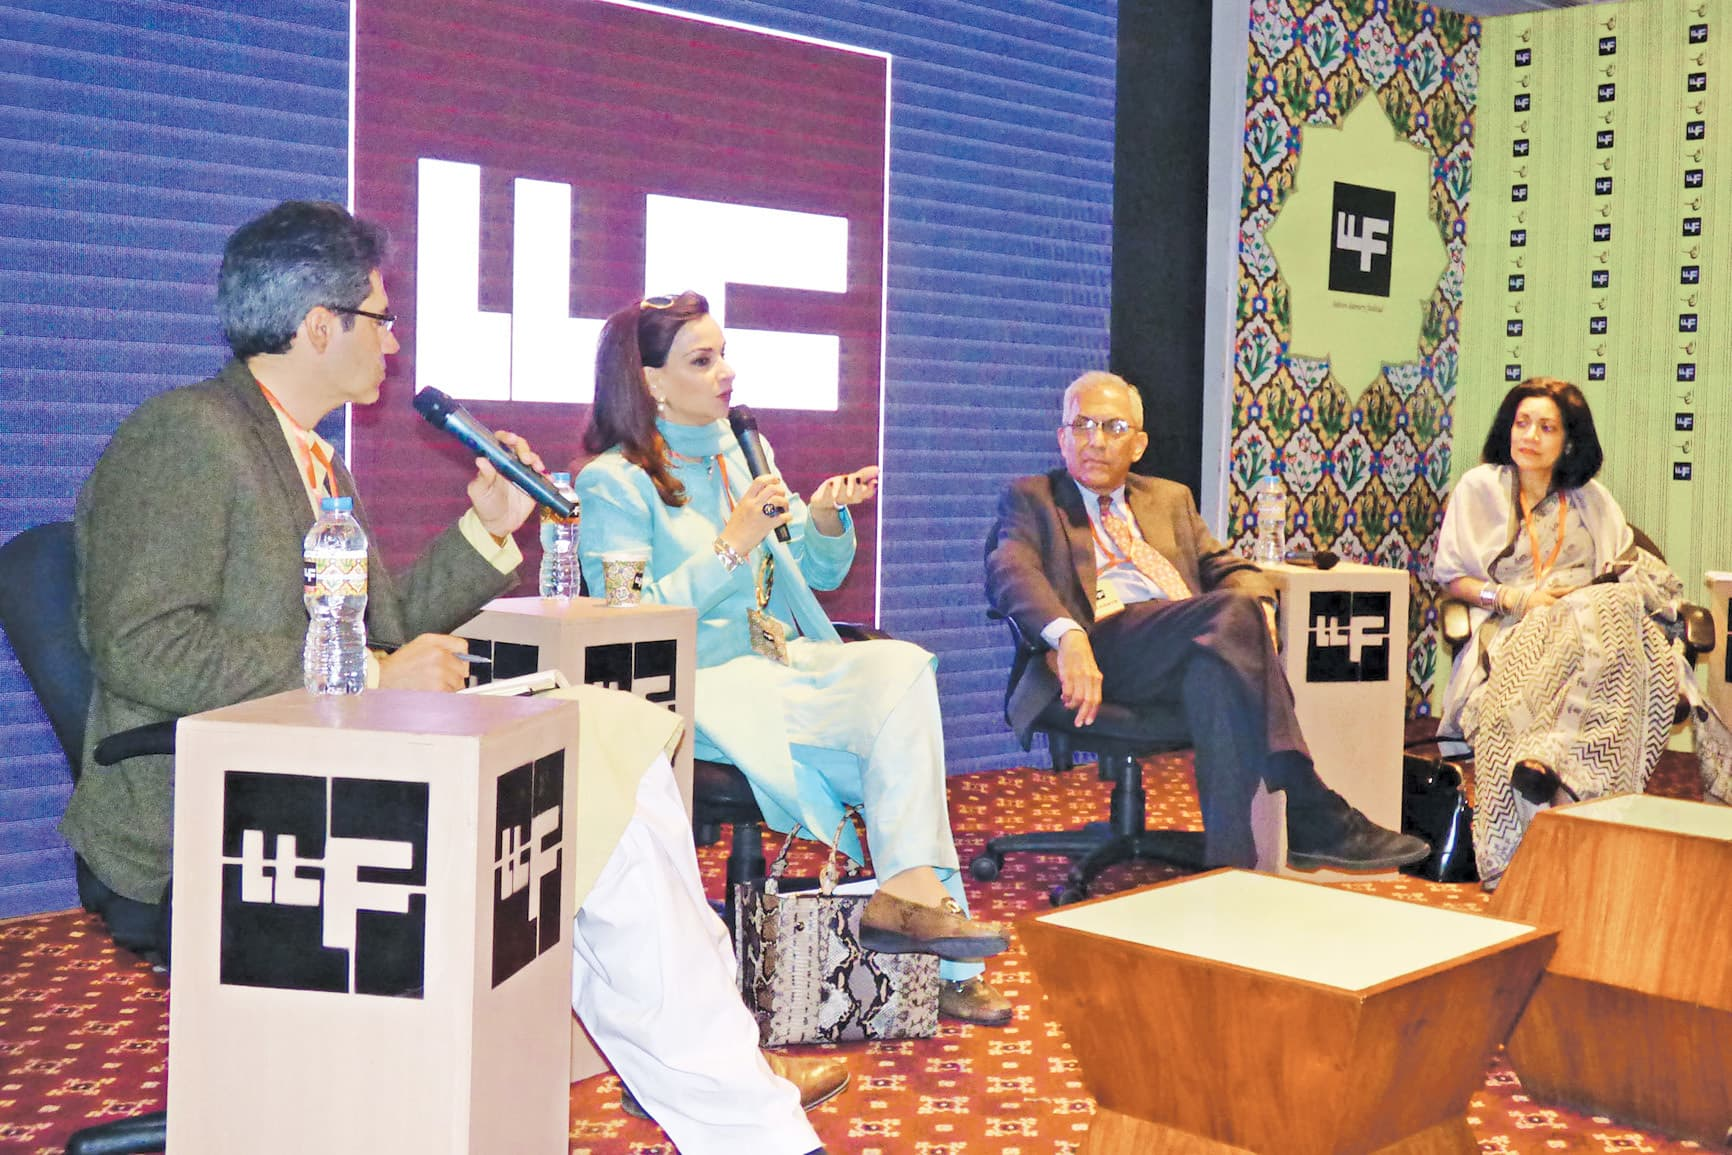 (From left to right) Dr Kamal Munir, Sherry Rehman, Salman Haider and Dina Siddiqi at the session 'Lurching Rightwards: South Asia in the Balance' 	 — Azhar Jafri/White Star